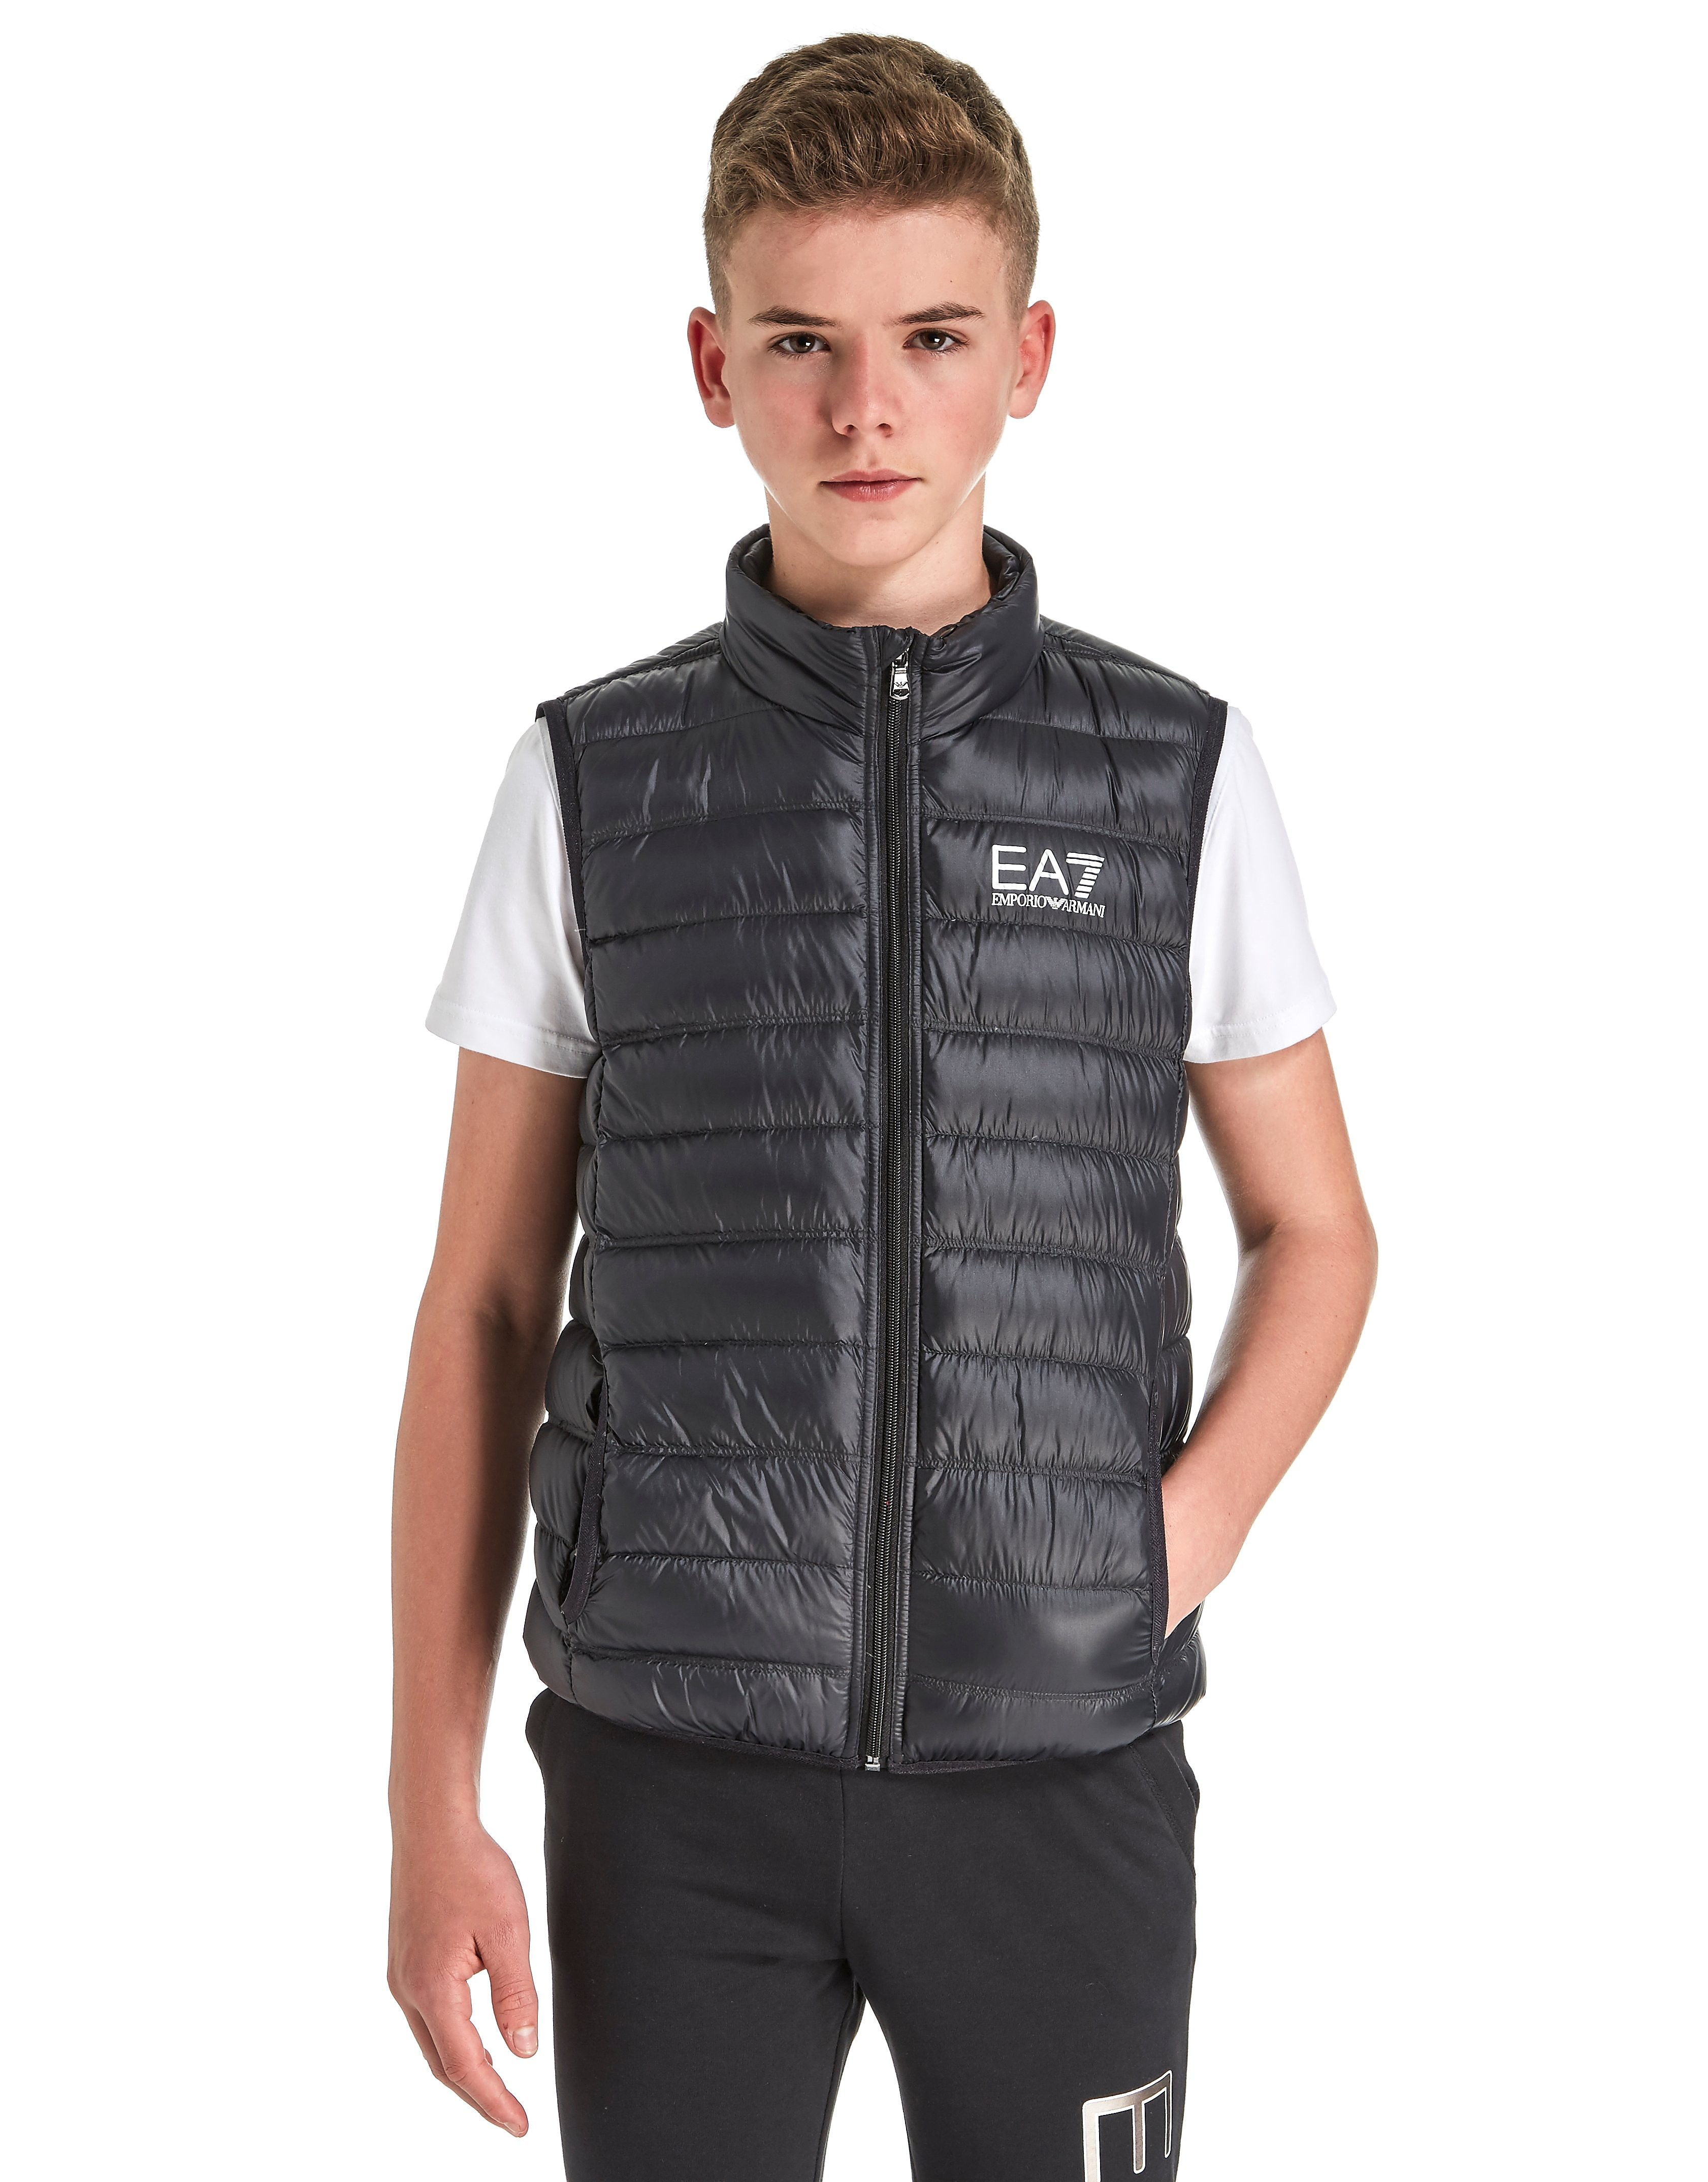 Emporio Armani EA7 Core Gilet Junior